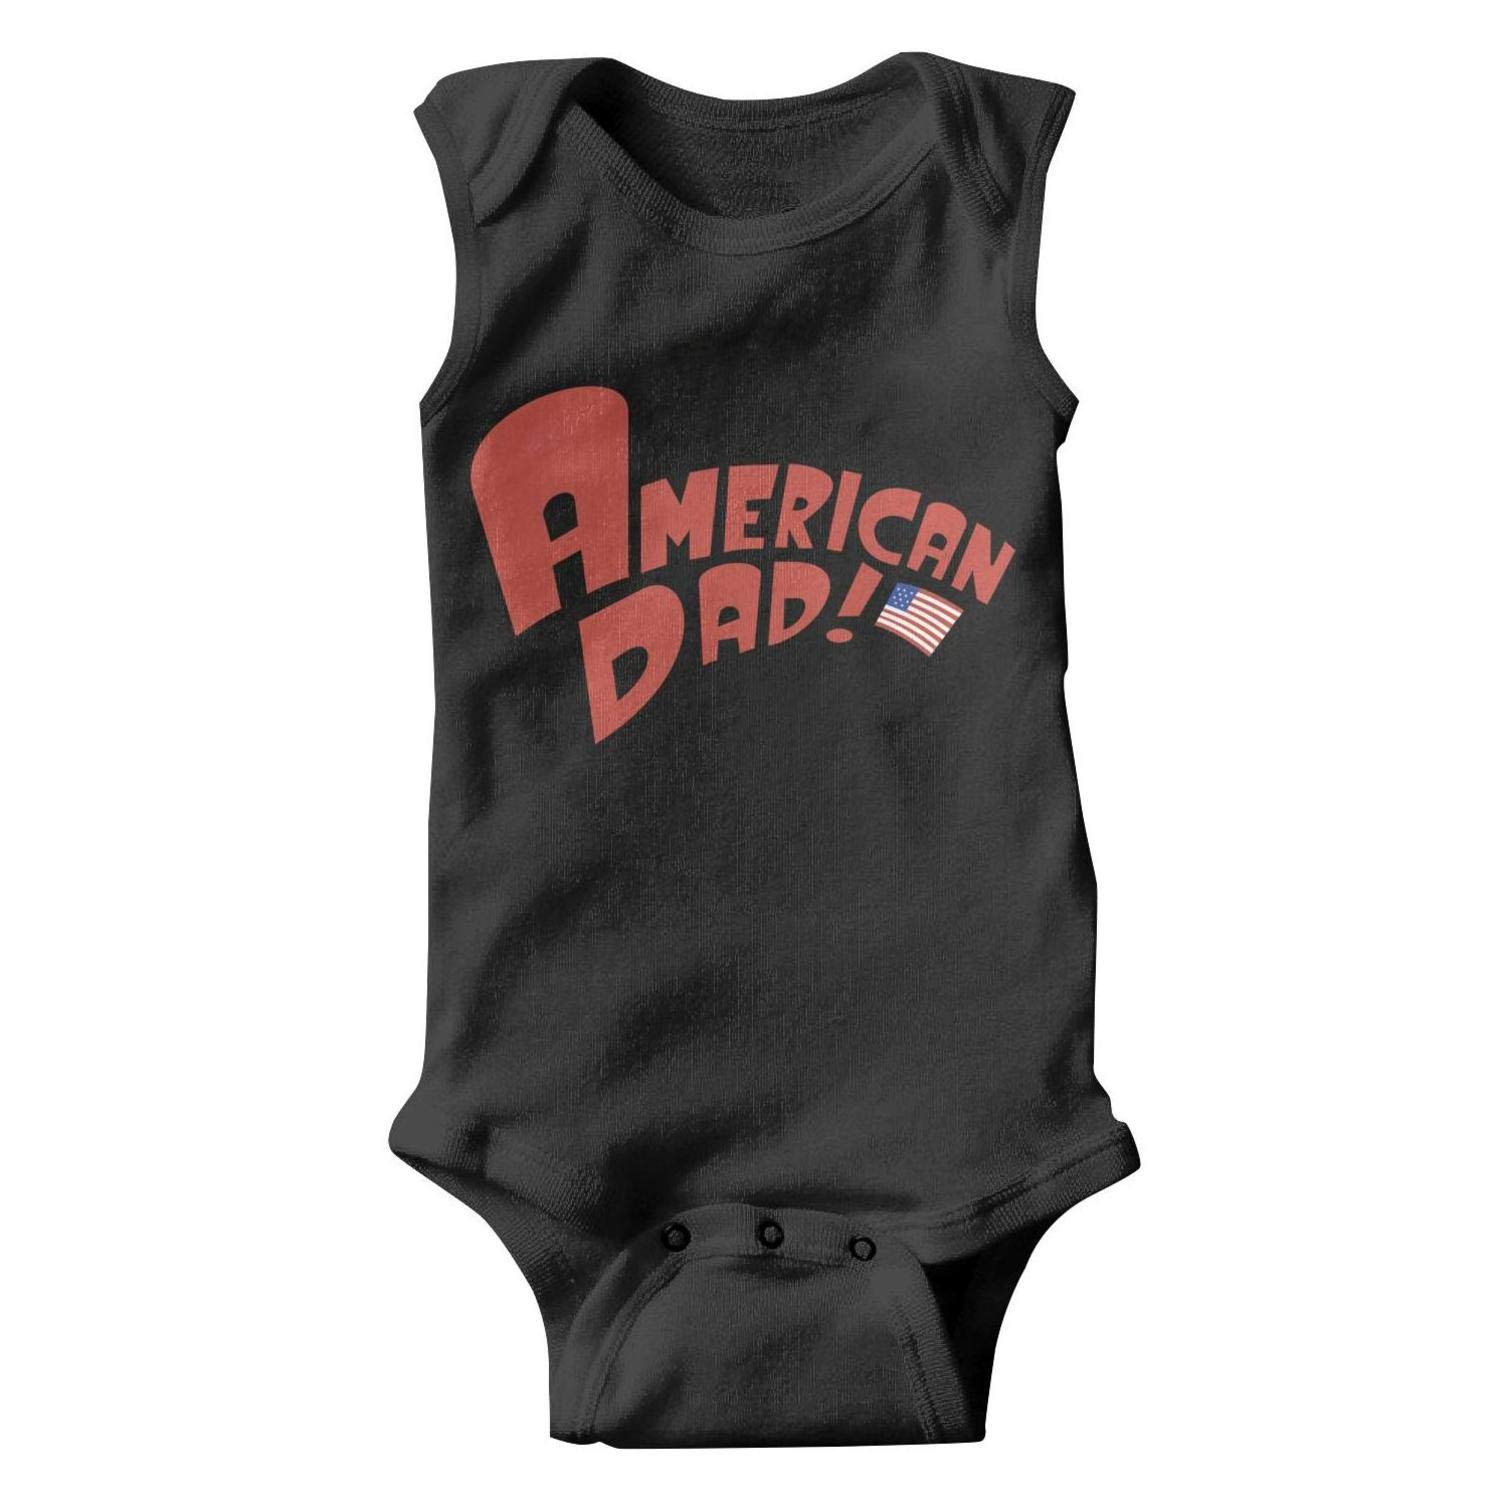 Cheer Dads We Get Stuff Done Baby Onesies Sleeveless Organic Outfits Gift for Unisex Boys Girls